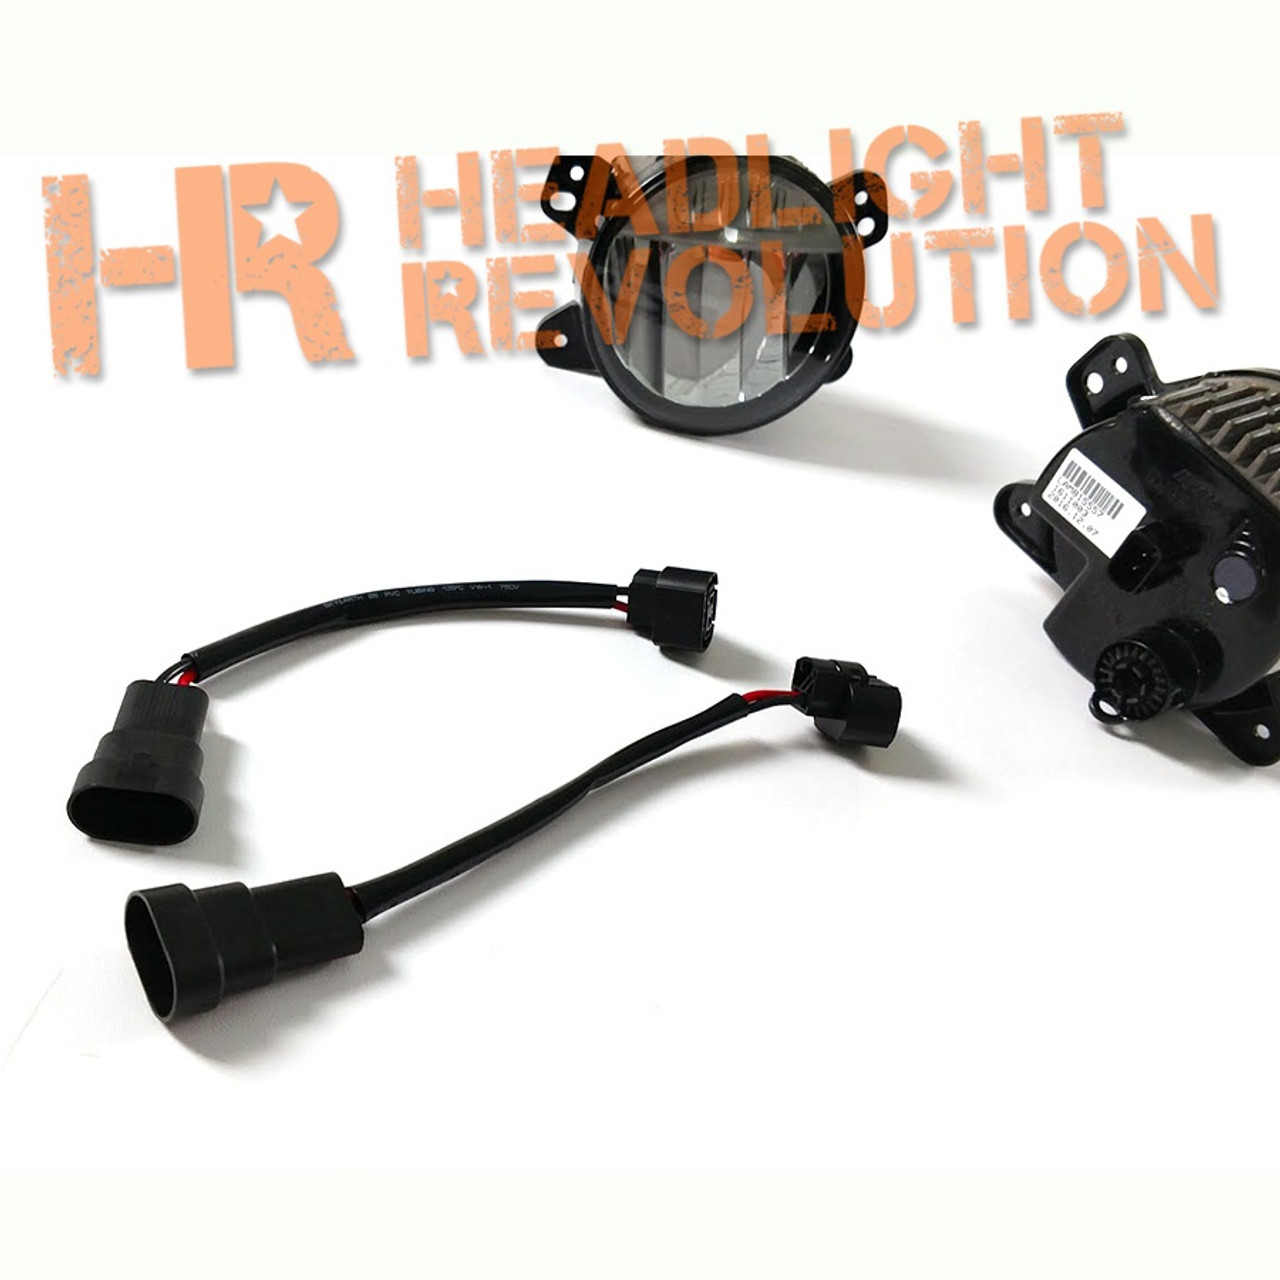 Headlight Revolution 9005 Male to 2504 Adapter Wire Harnesses for on gm wire harness, dc wire harness, el wire harness, tj wire harness,